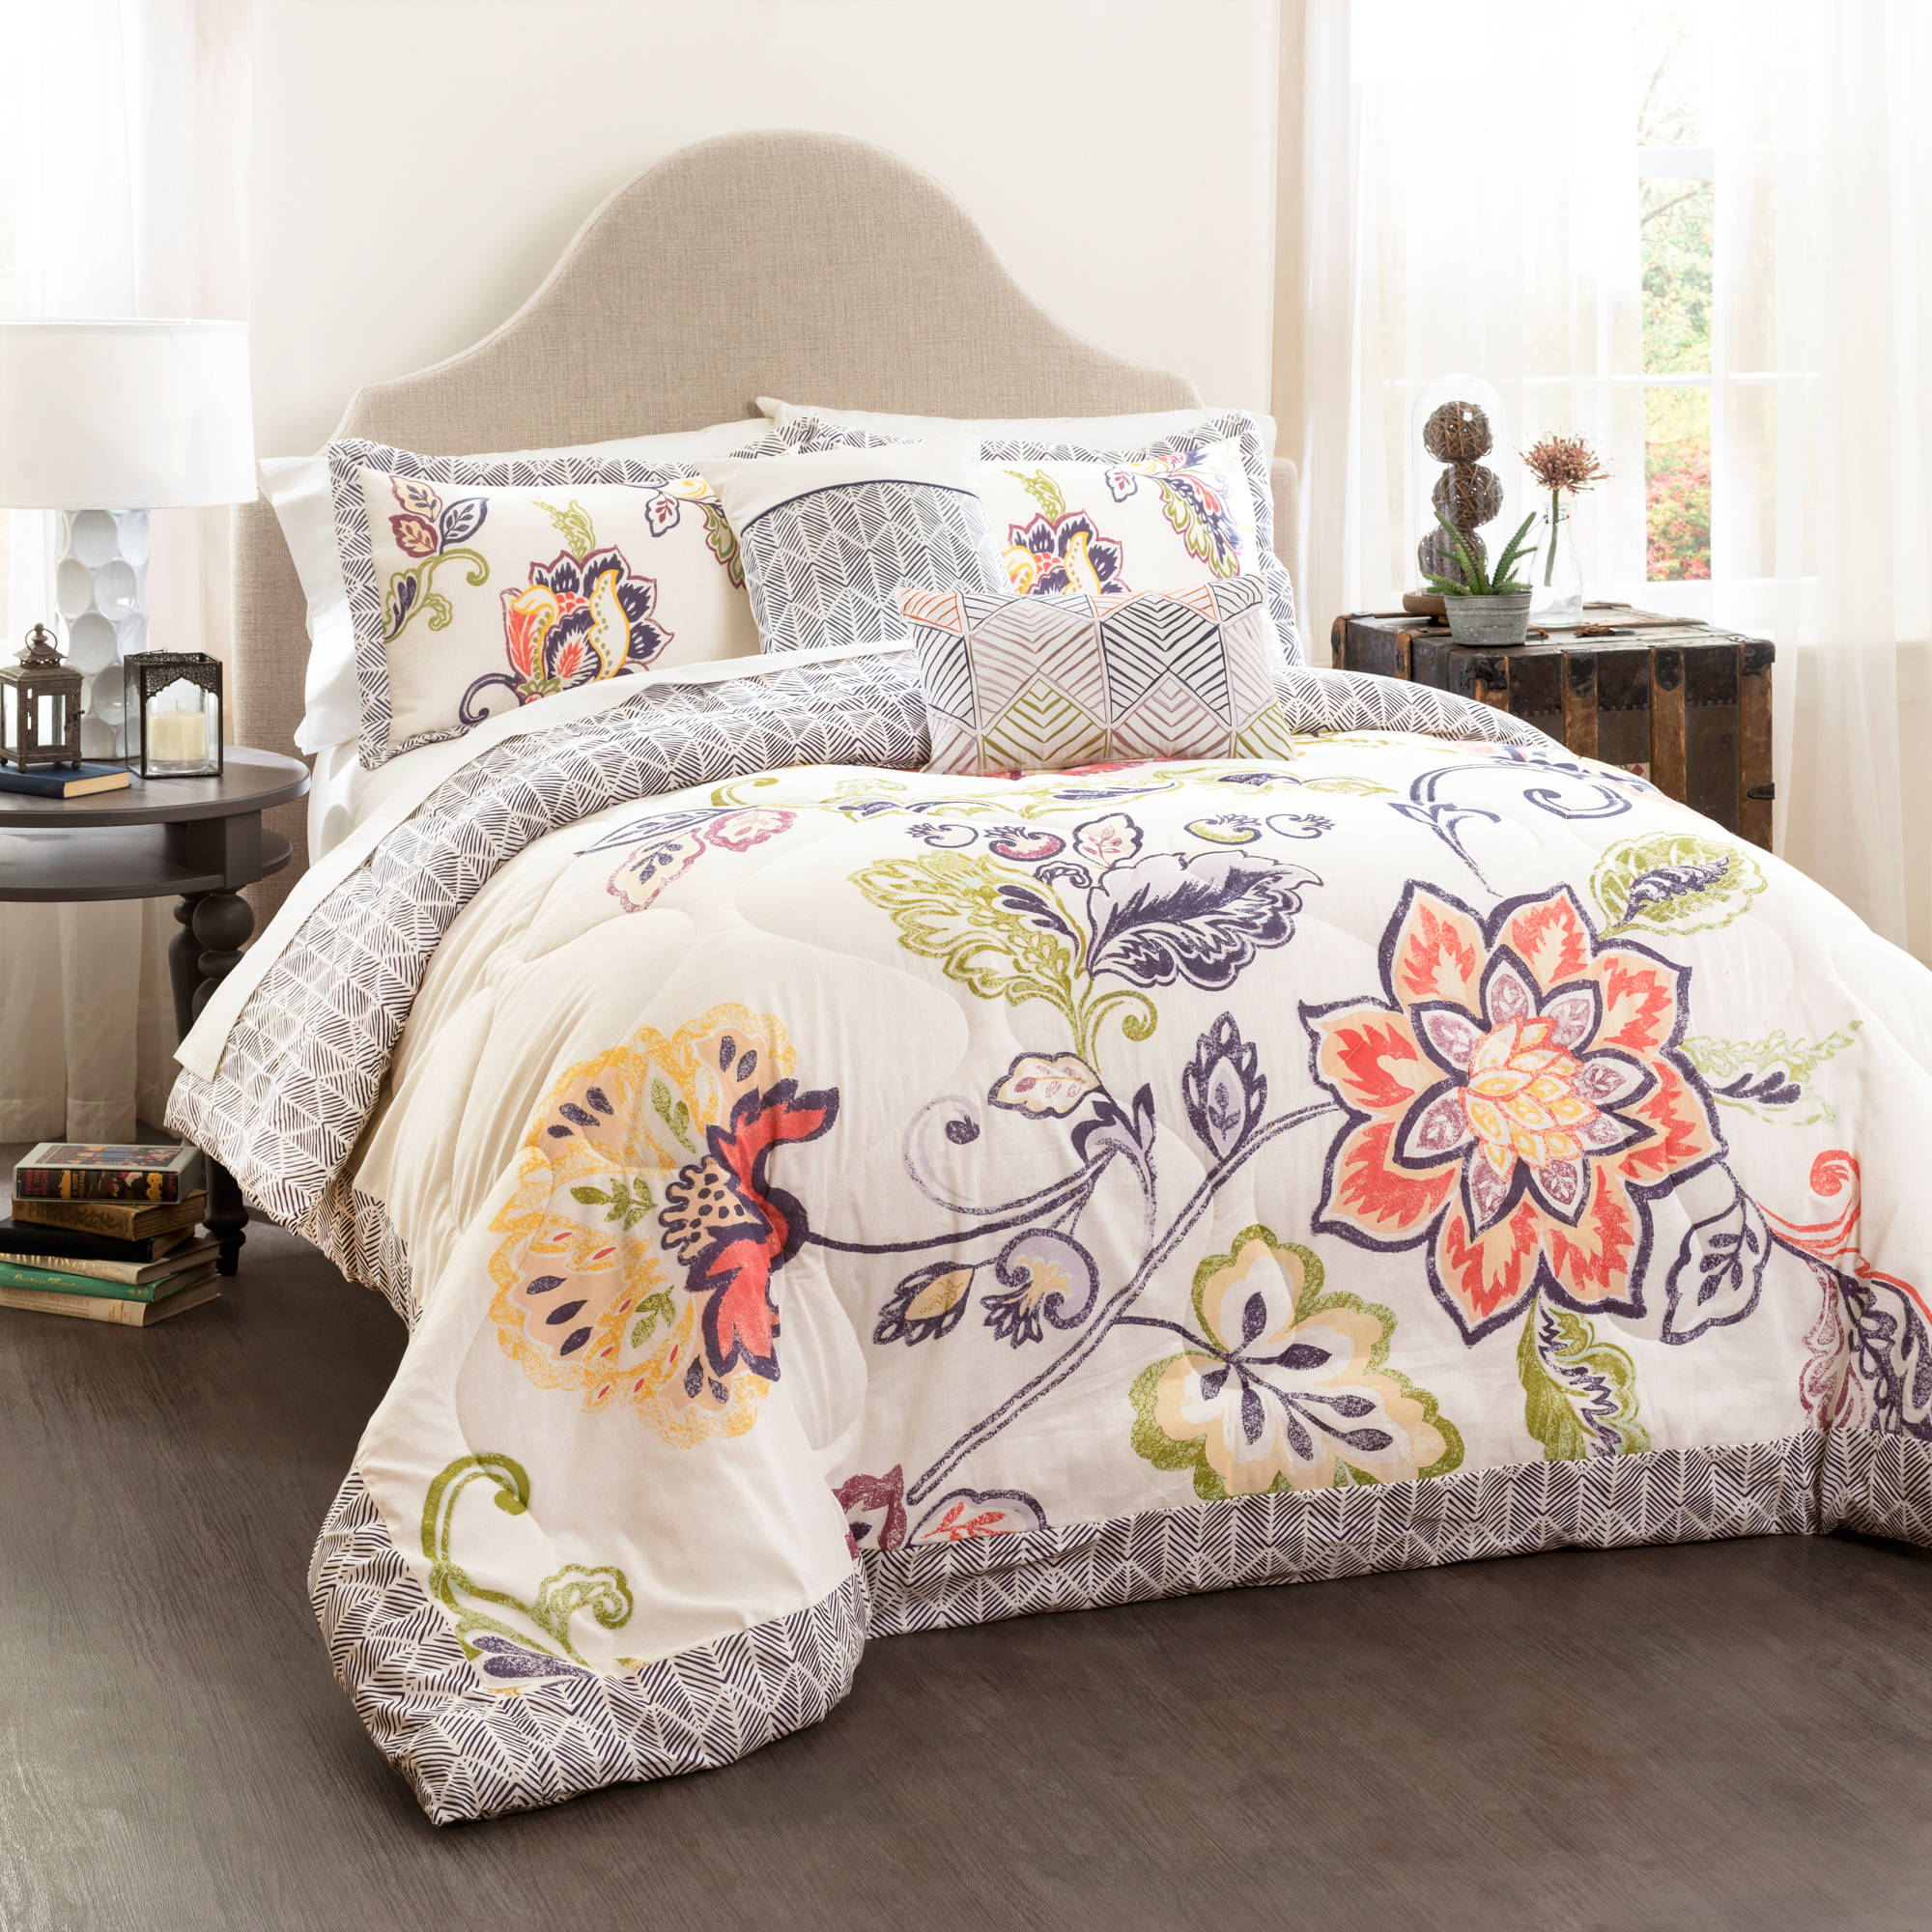 Aster quilted comforter coral navy 5 piece set king walmart com